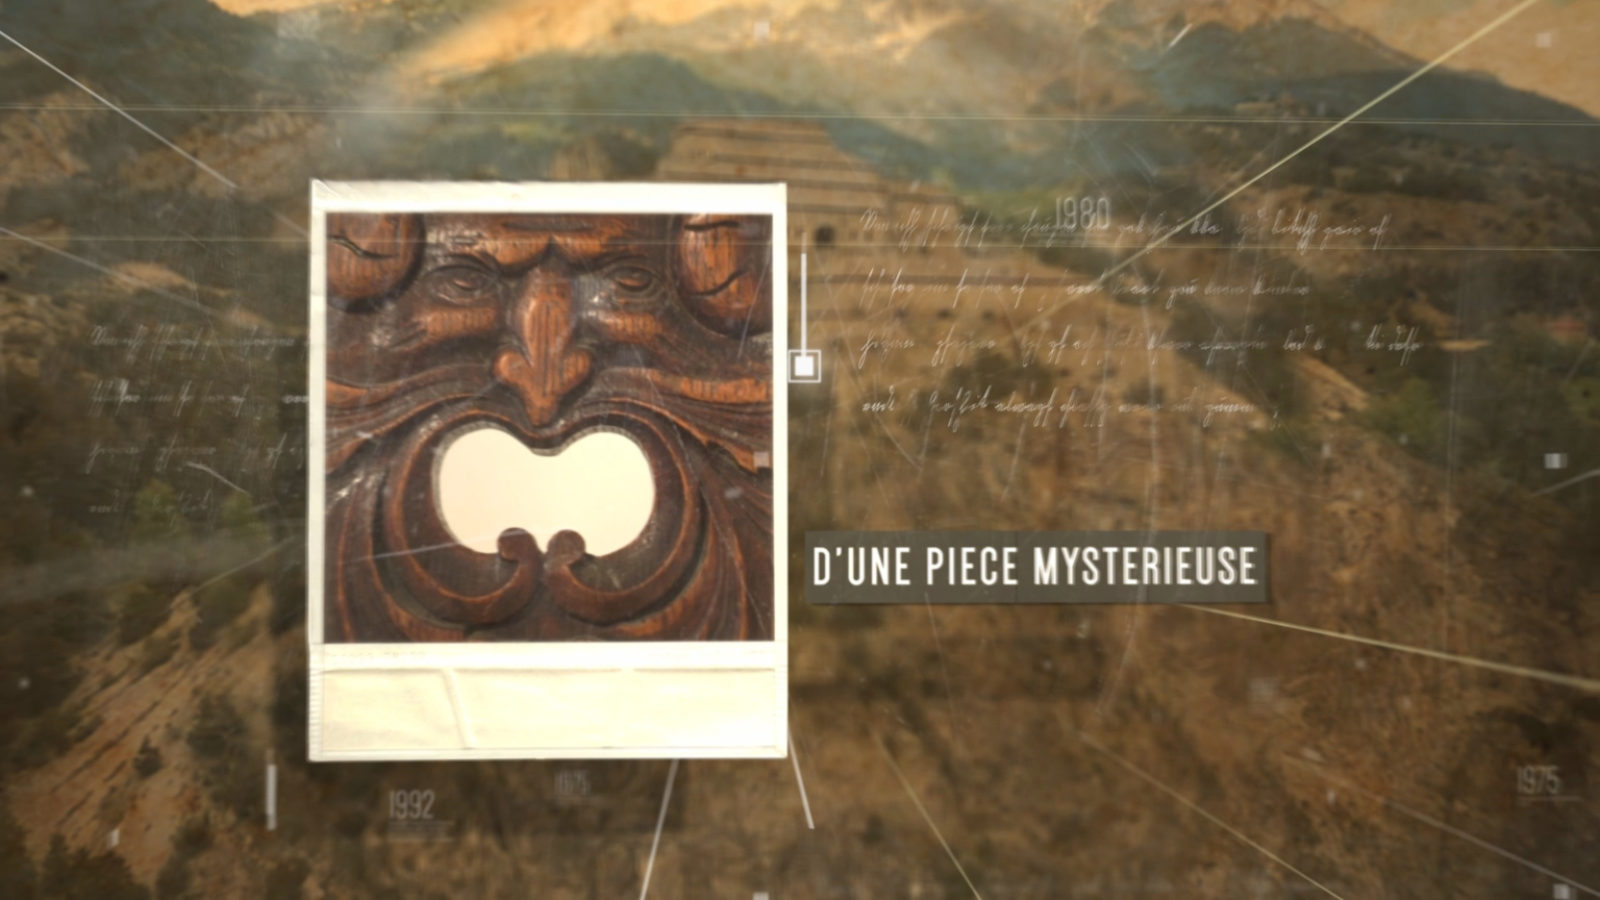 Fort marie therese-piece mysterieuse